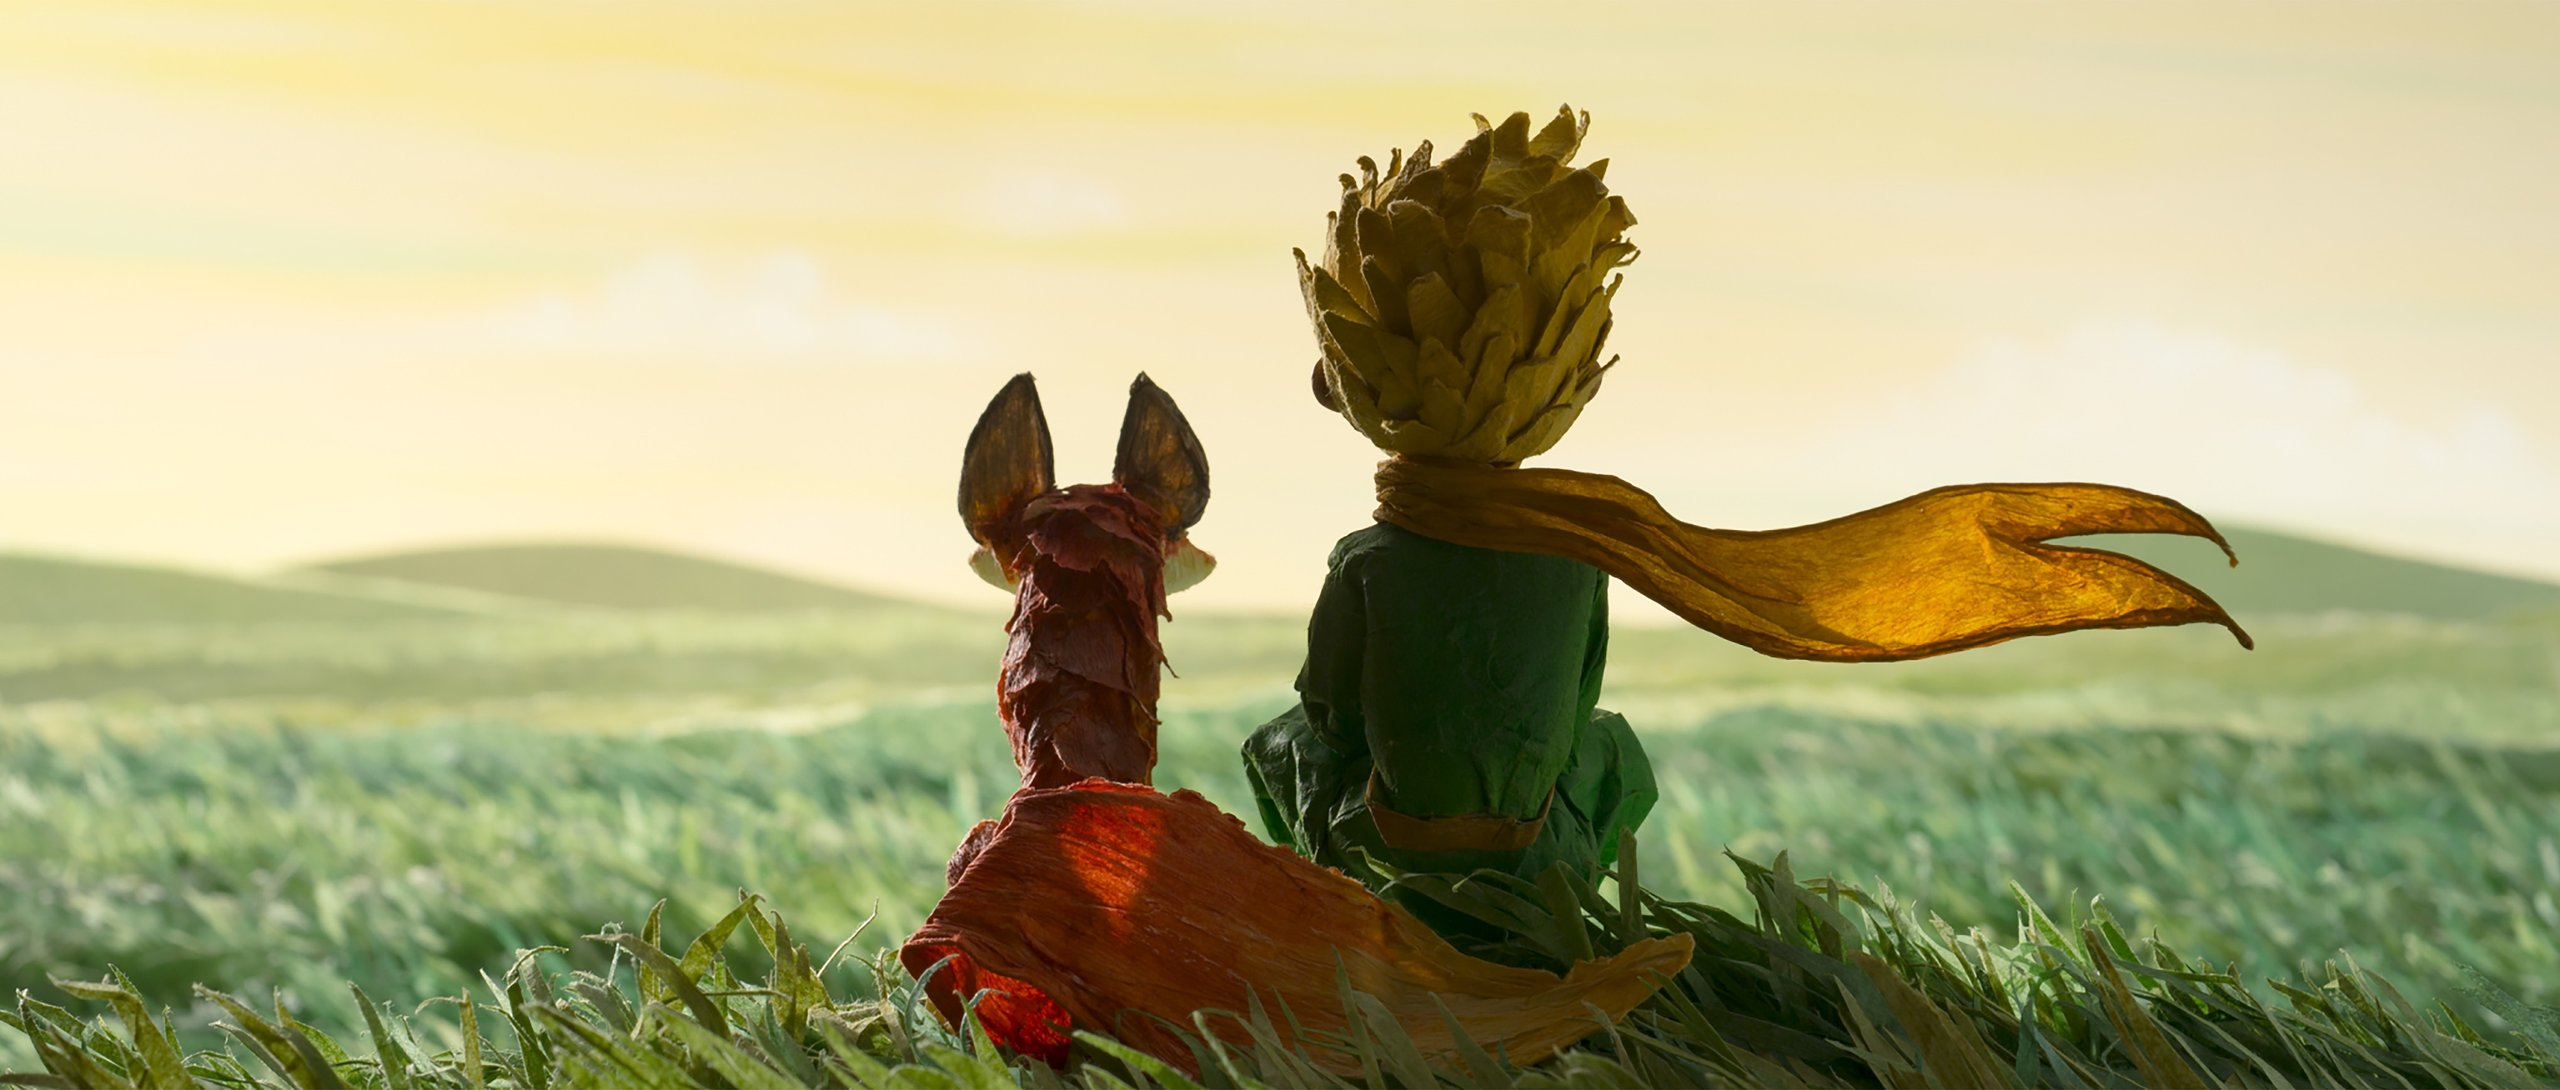 two worlds in the little prince The little prince appears to be a simple children's tale, some would say that it is actually a profound and deeply moving tale, written in riddles and laced with philosophy and poetic metaphor.